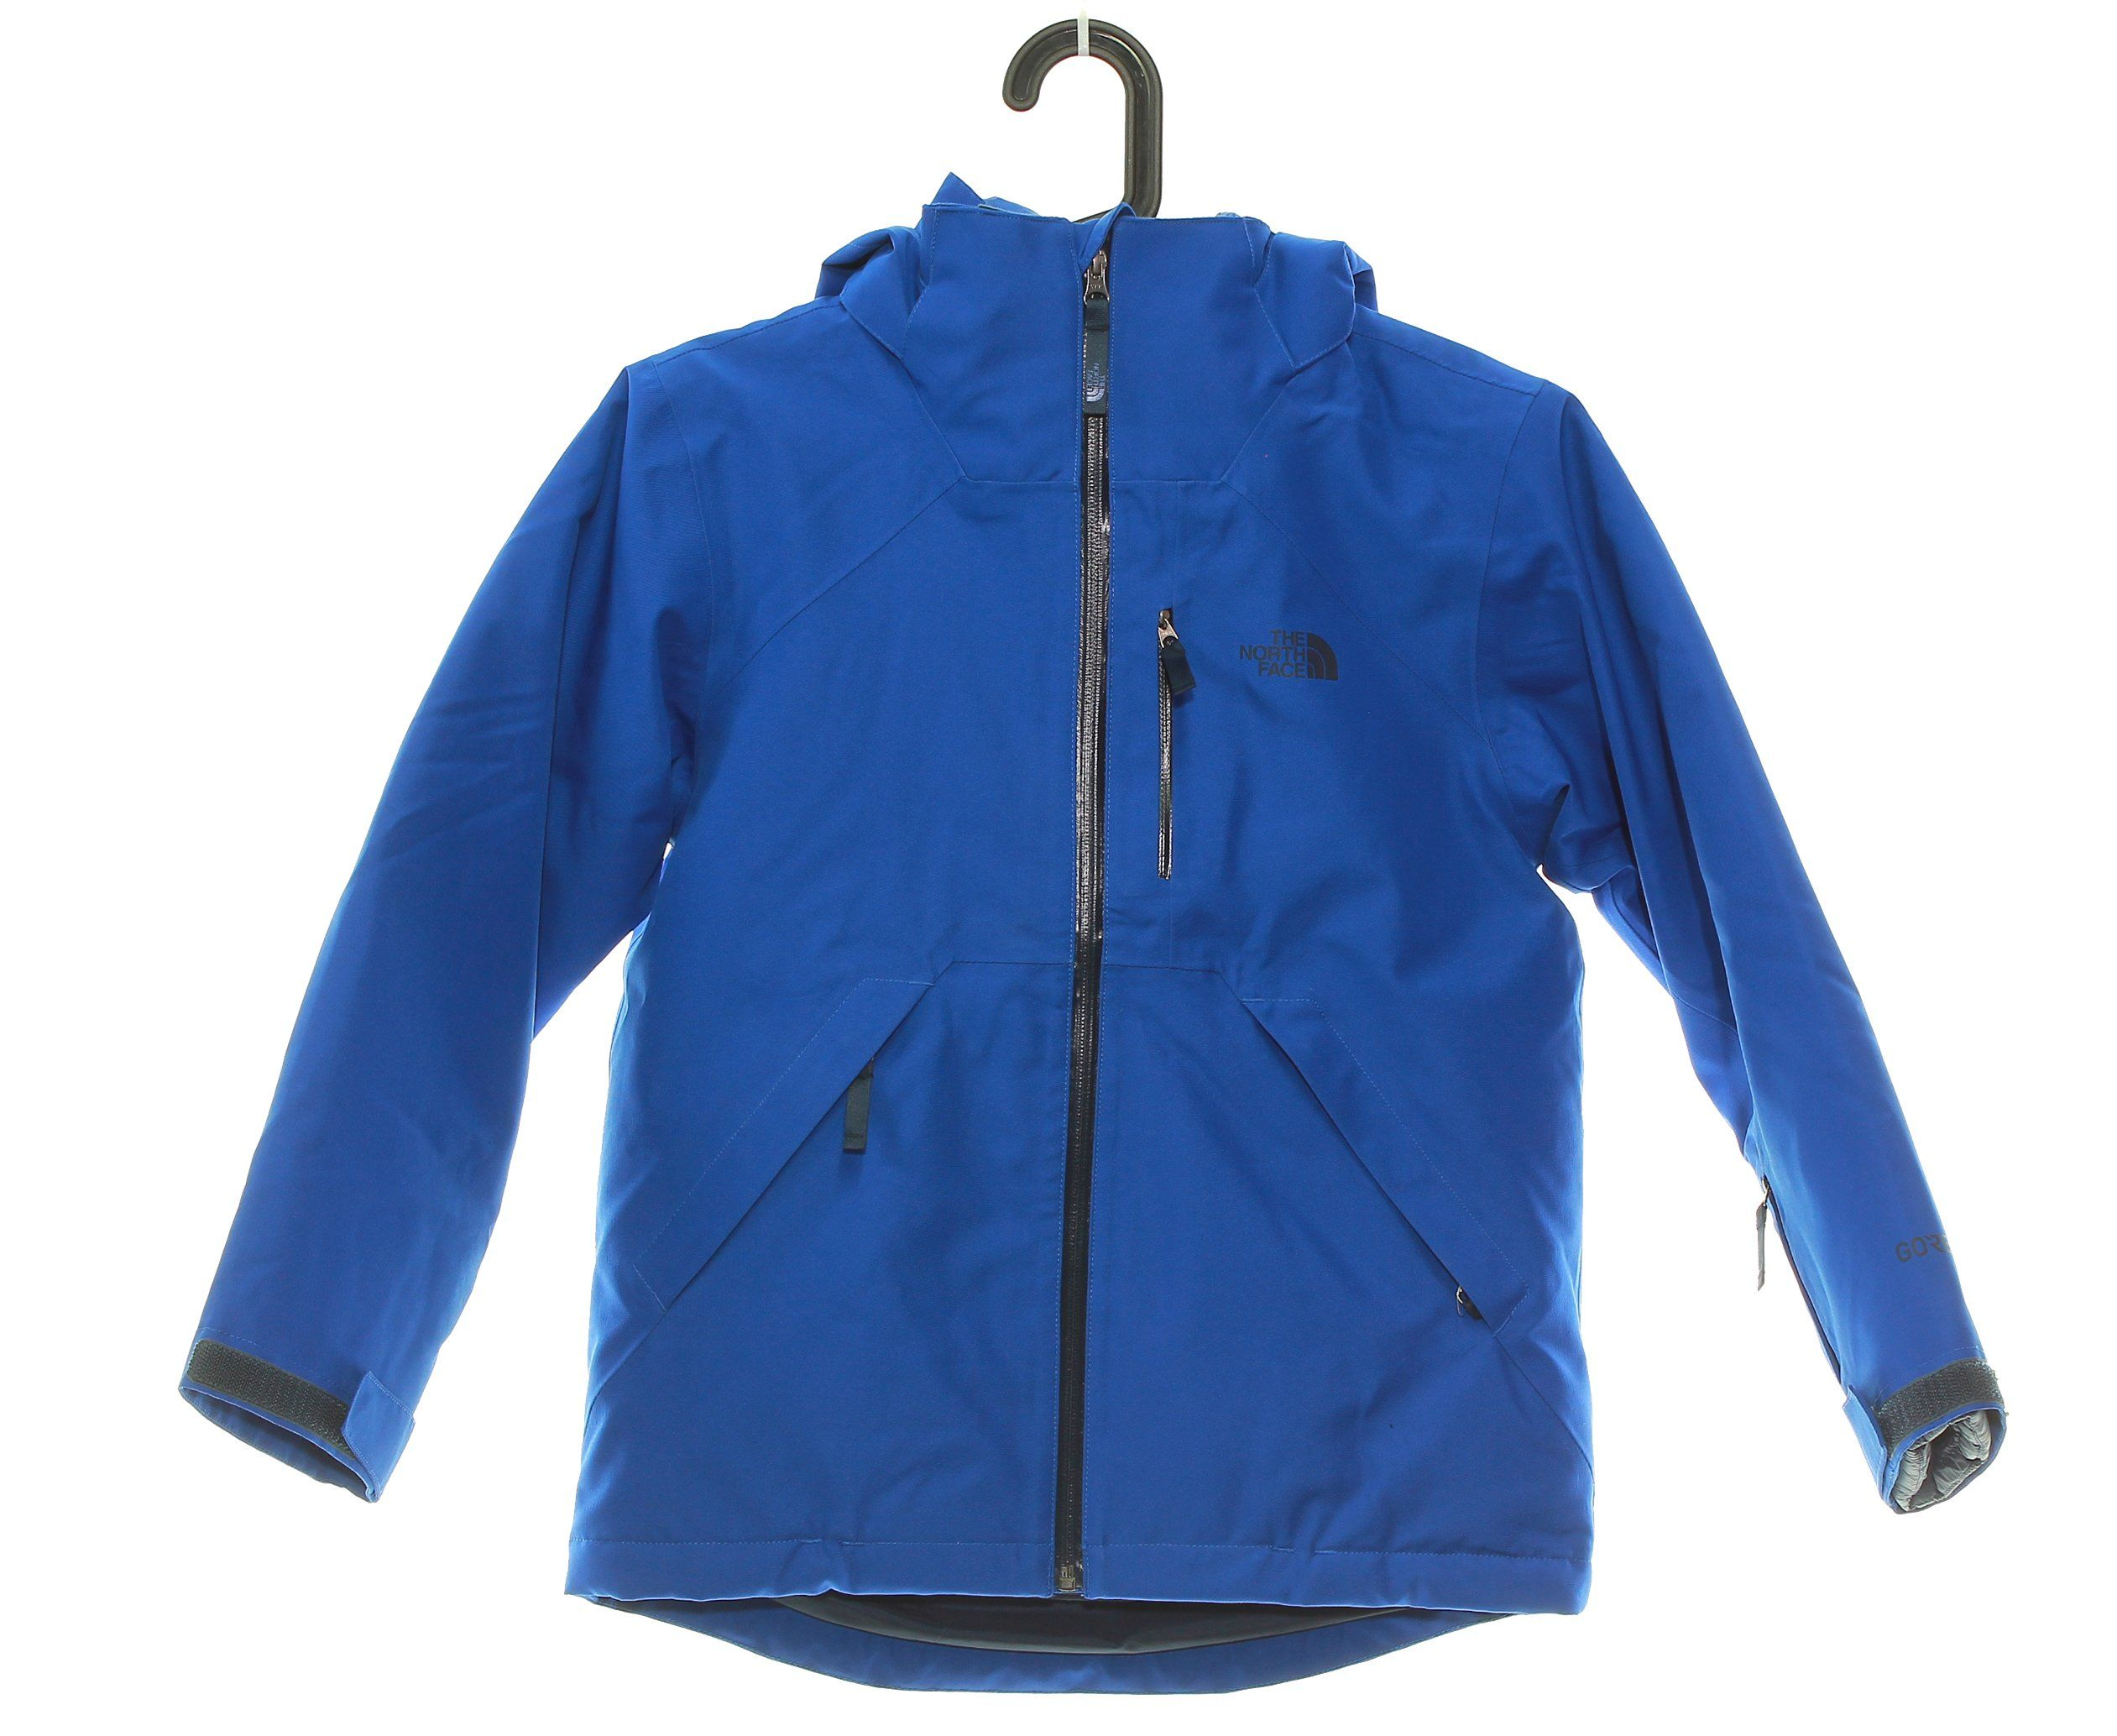 e582ba93e0e5 Boy s The North Face Fresh Tracks Triclimate Jacket Size 10 12 Medium Blue.  No